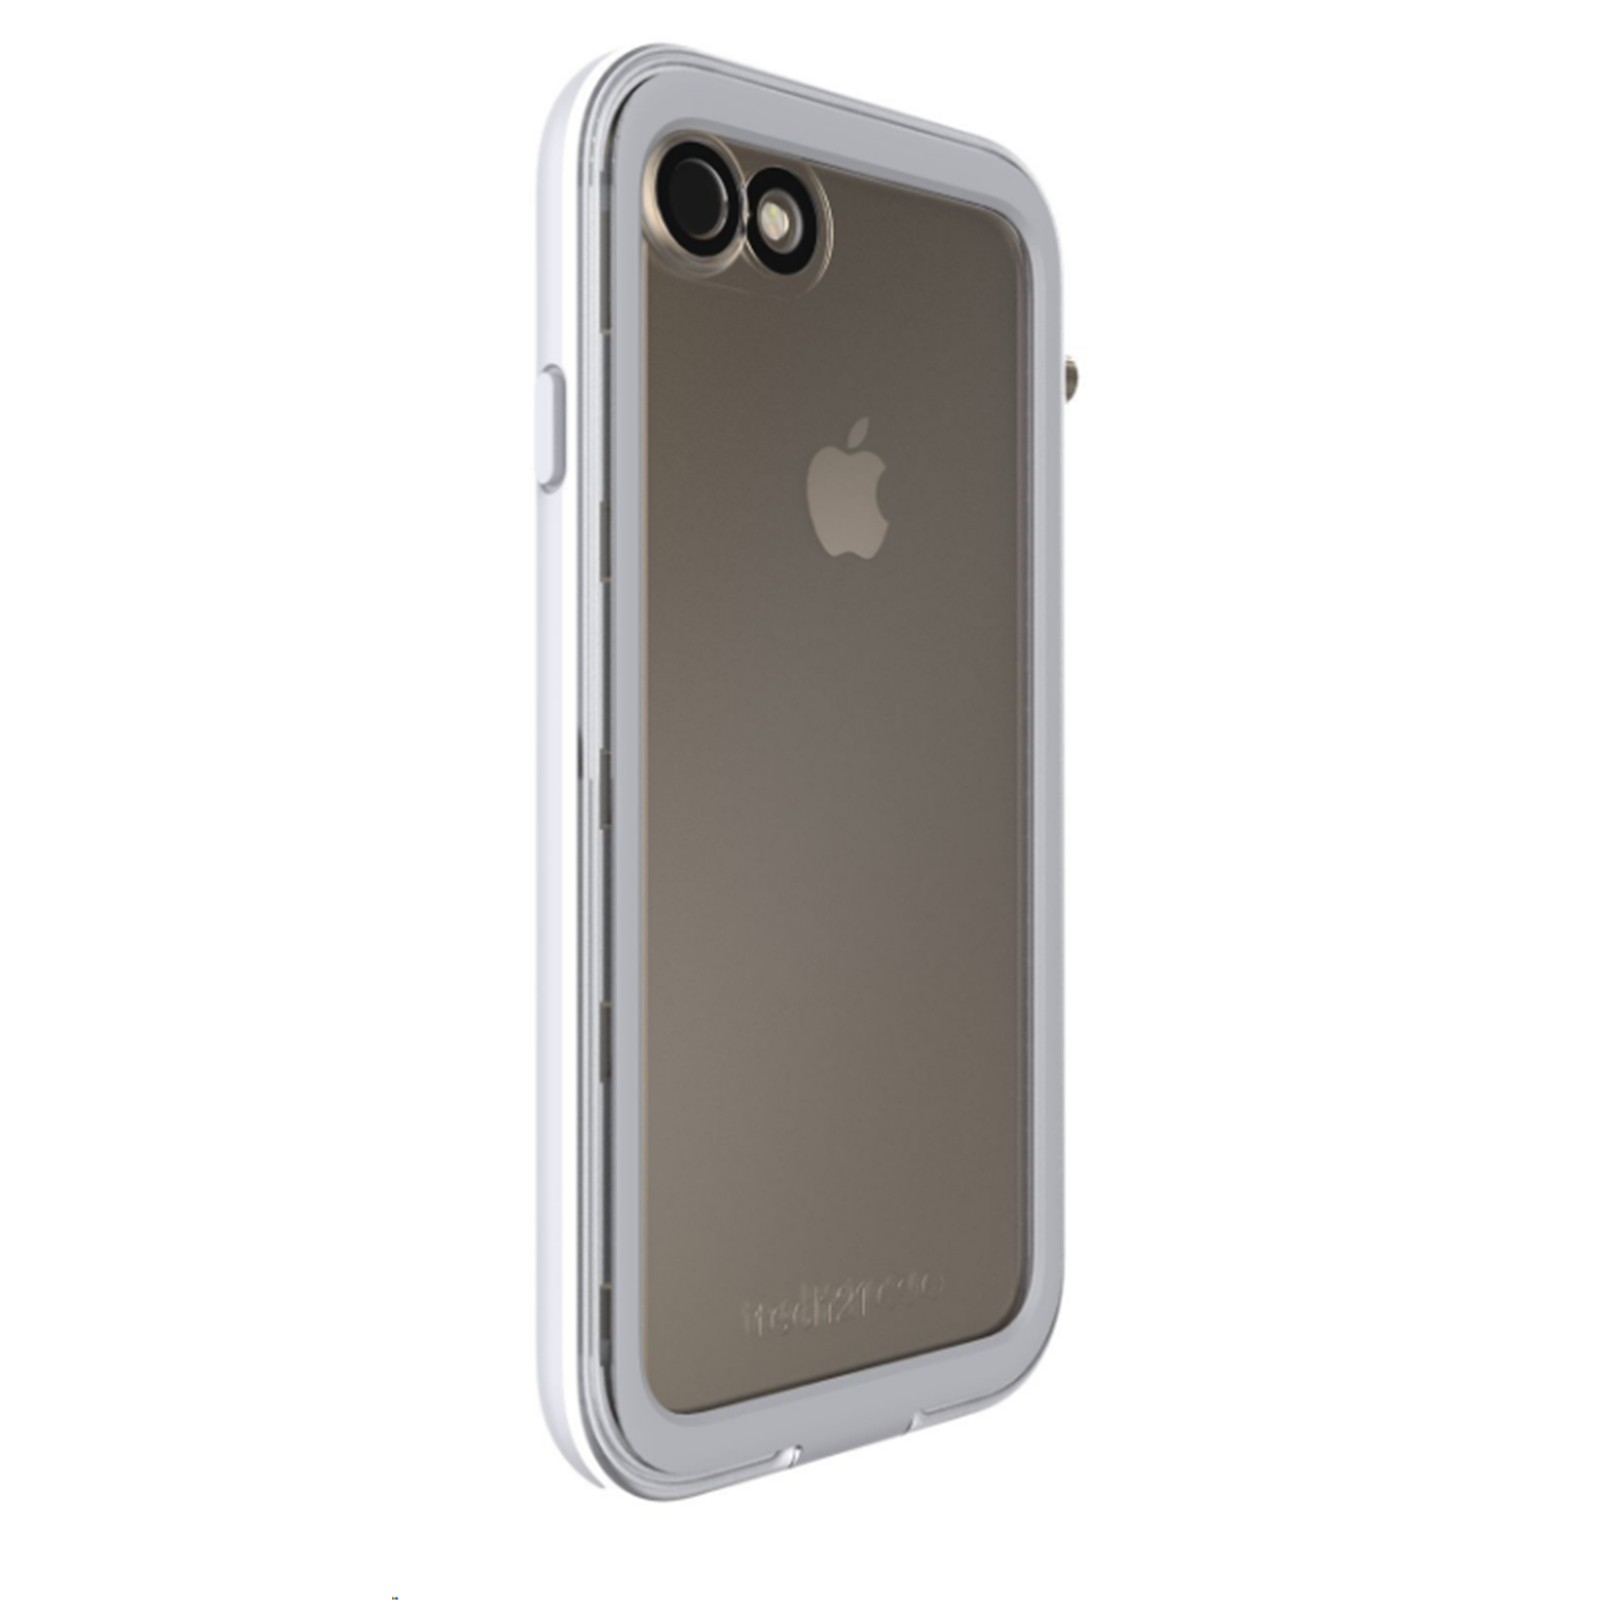 outlet store 3df6e 28eec Buy the Tech 21 Evo Aqua 360 for iPhone 7 - White ( T21-5454 ...